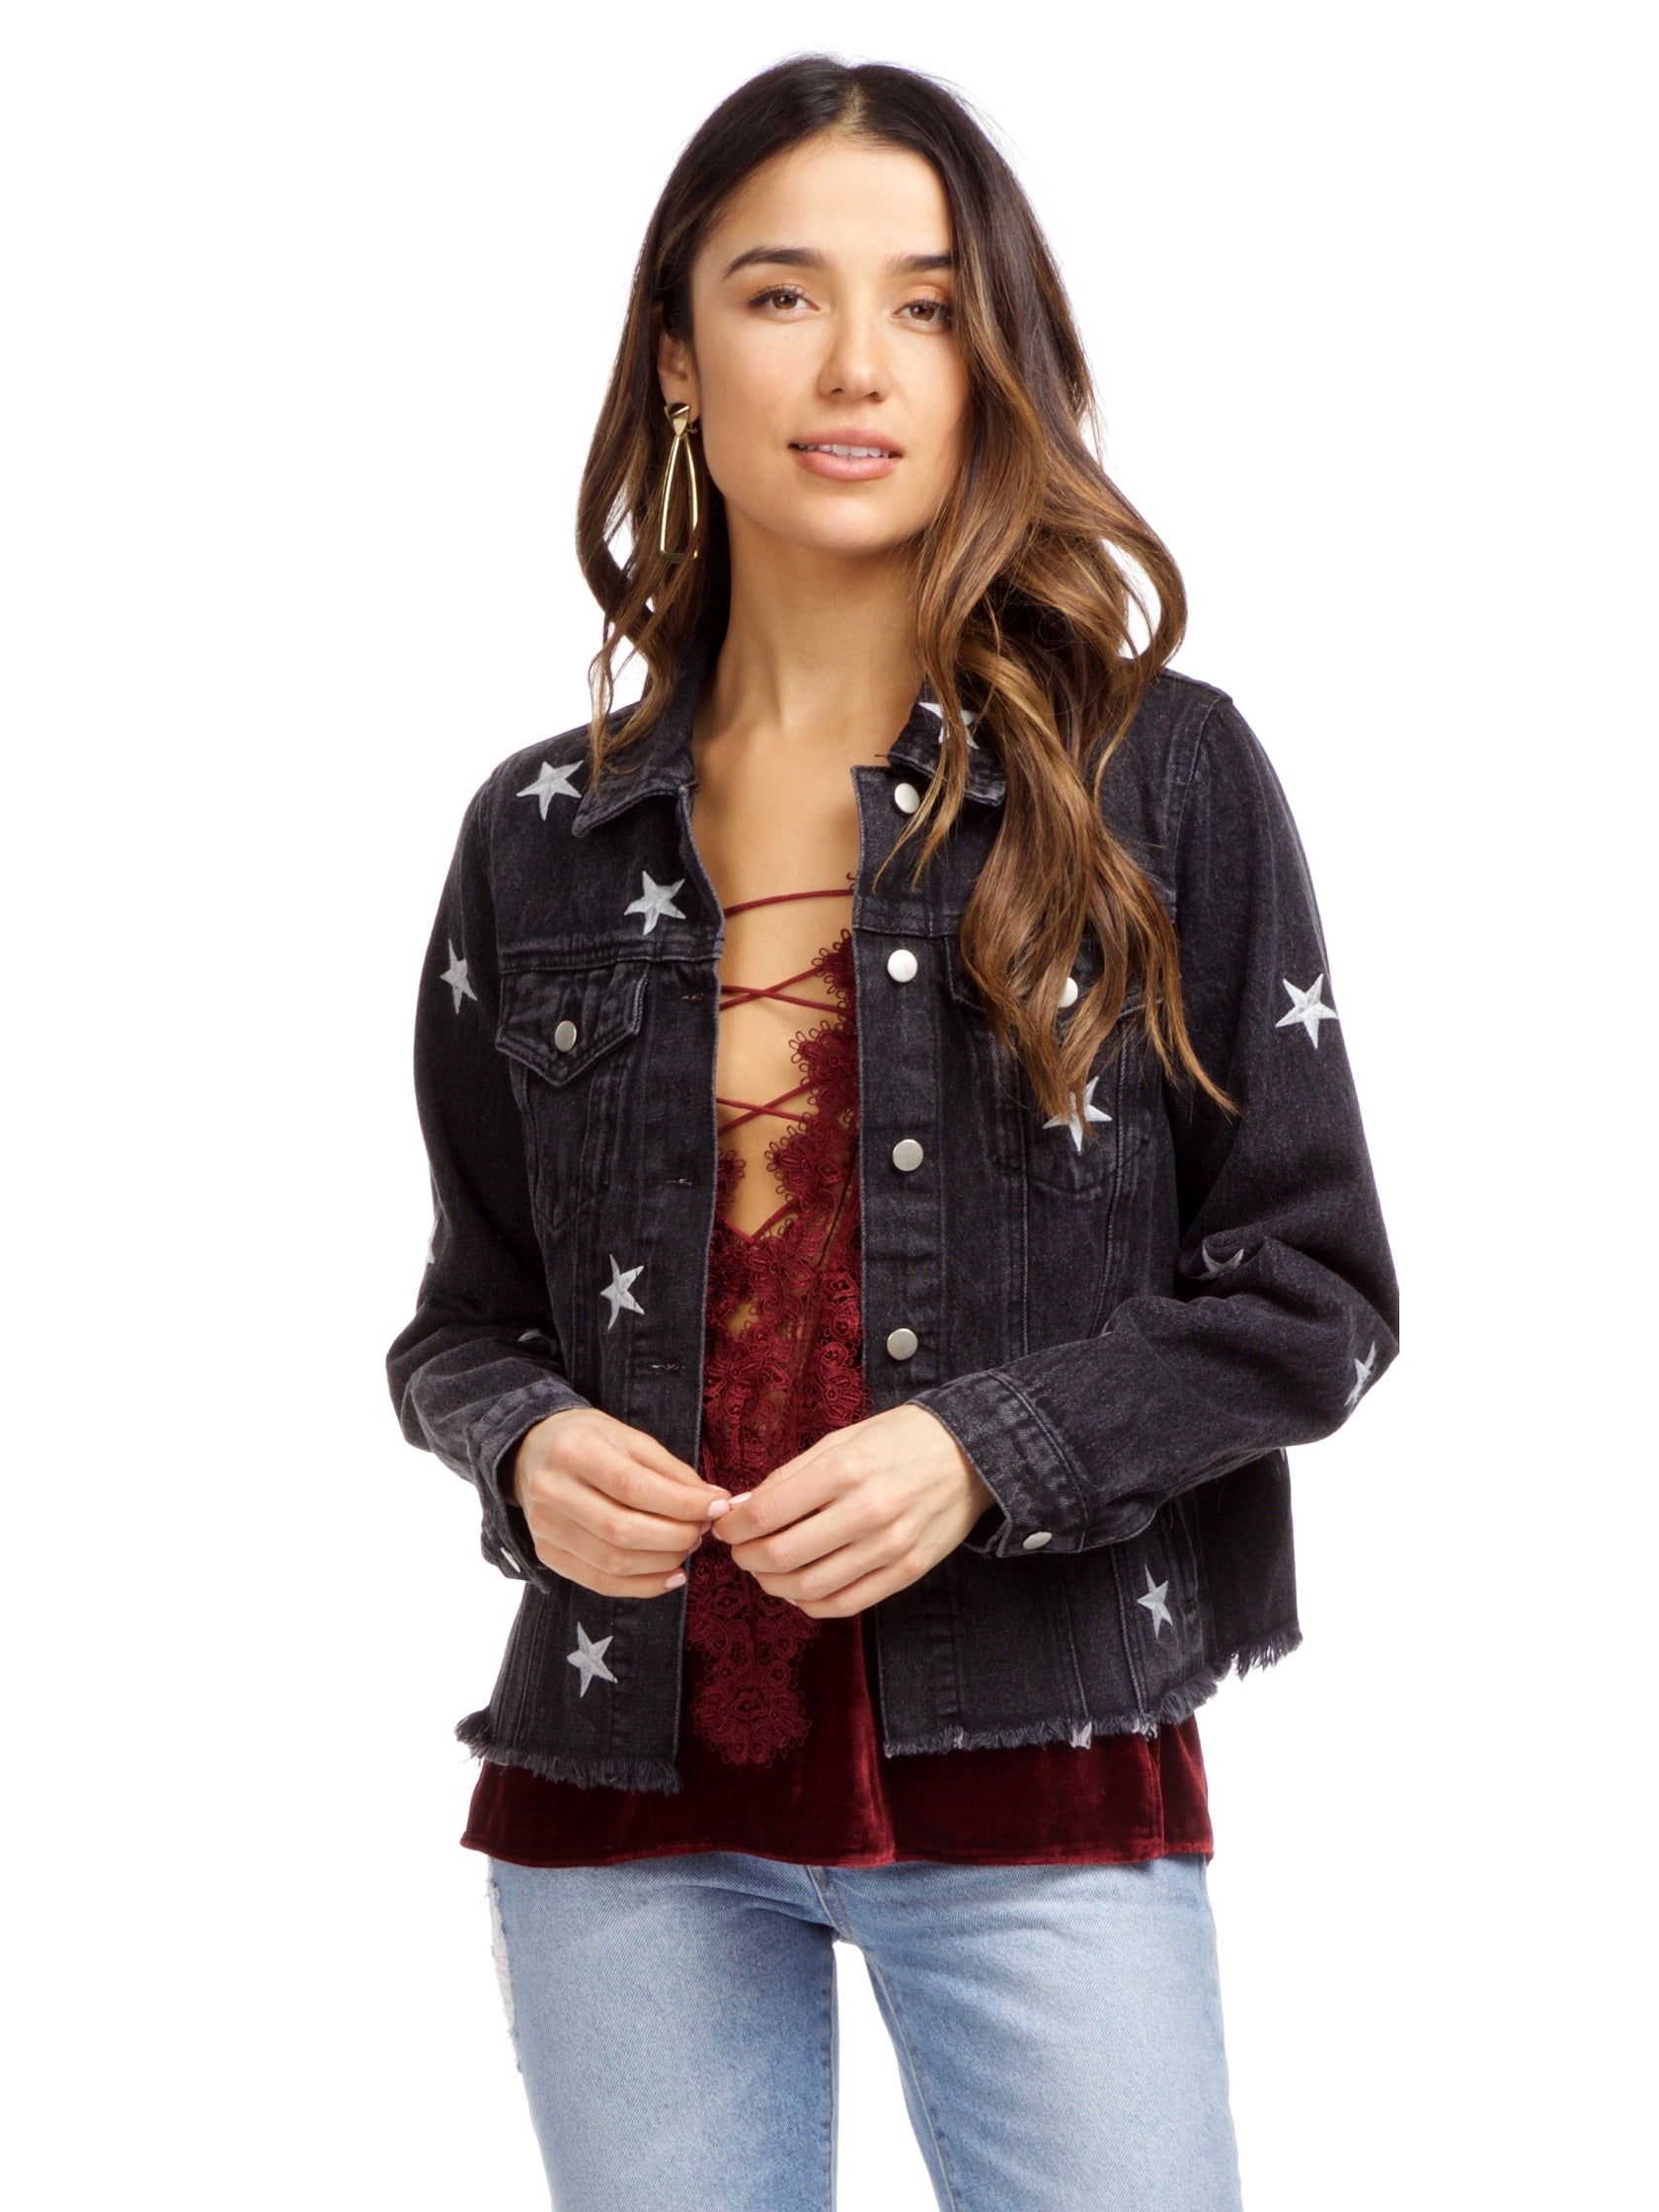 Woman wearing a jacket rental from FashionPass called Stardust Denim Jacket